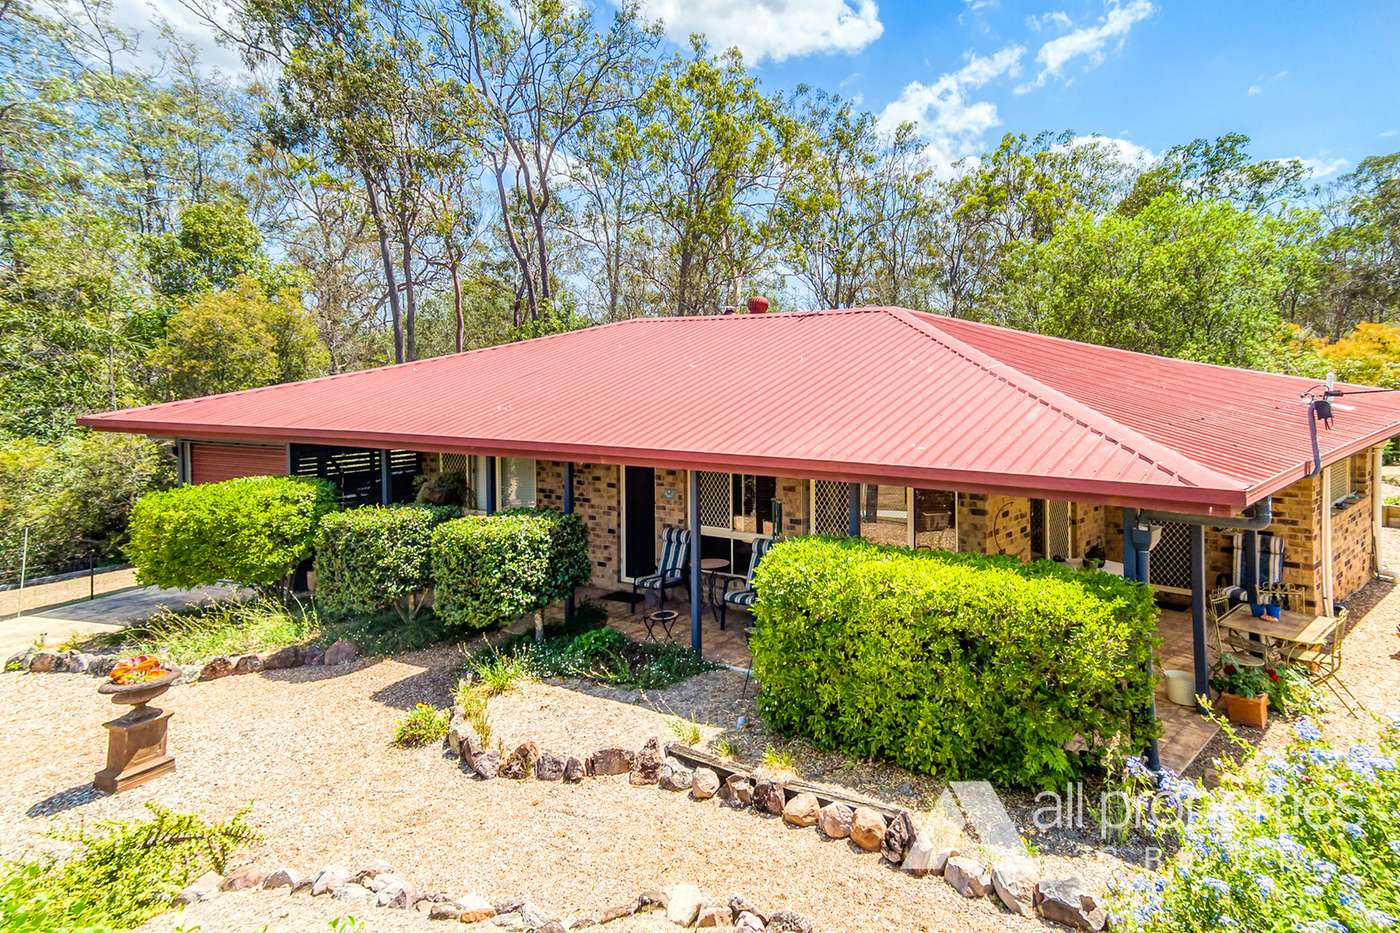 Main view of Homely house listing, 192 Merluna Road, Park Ridge South, QLD 4125